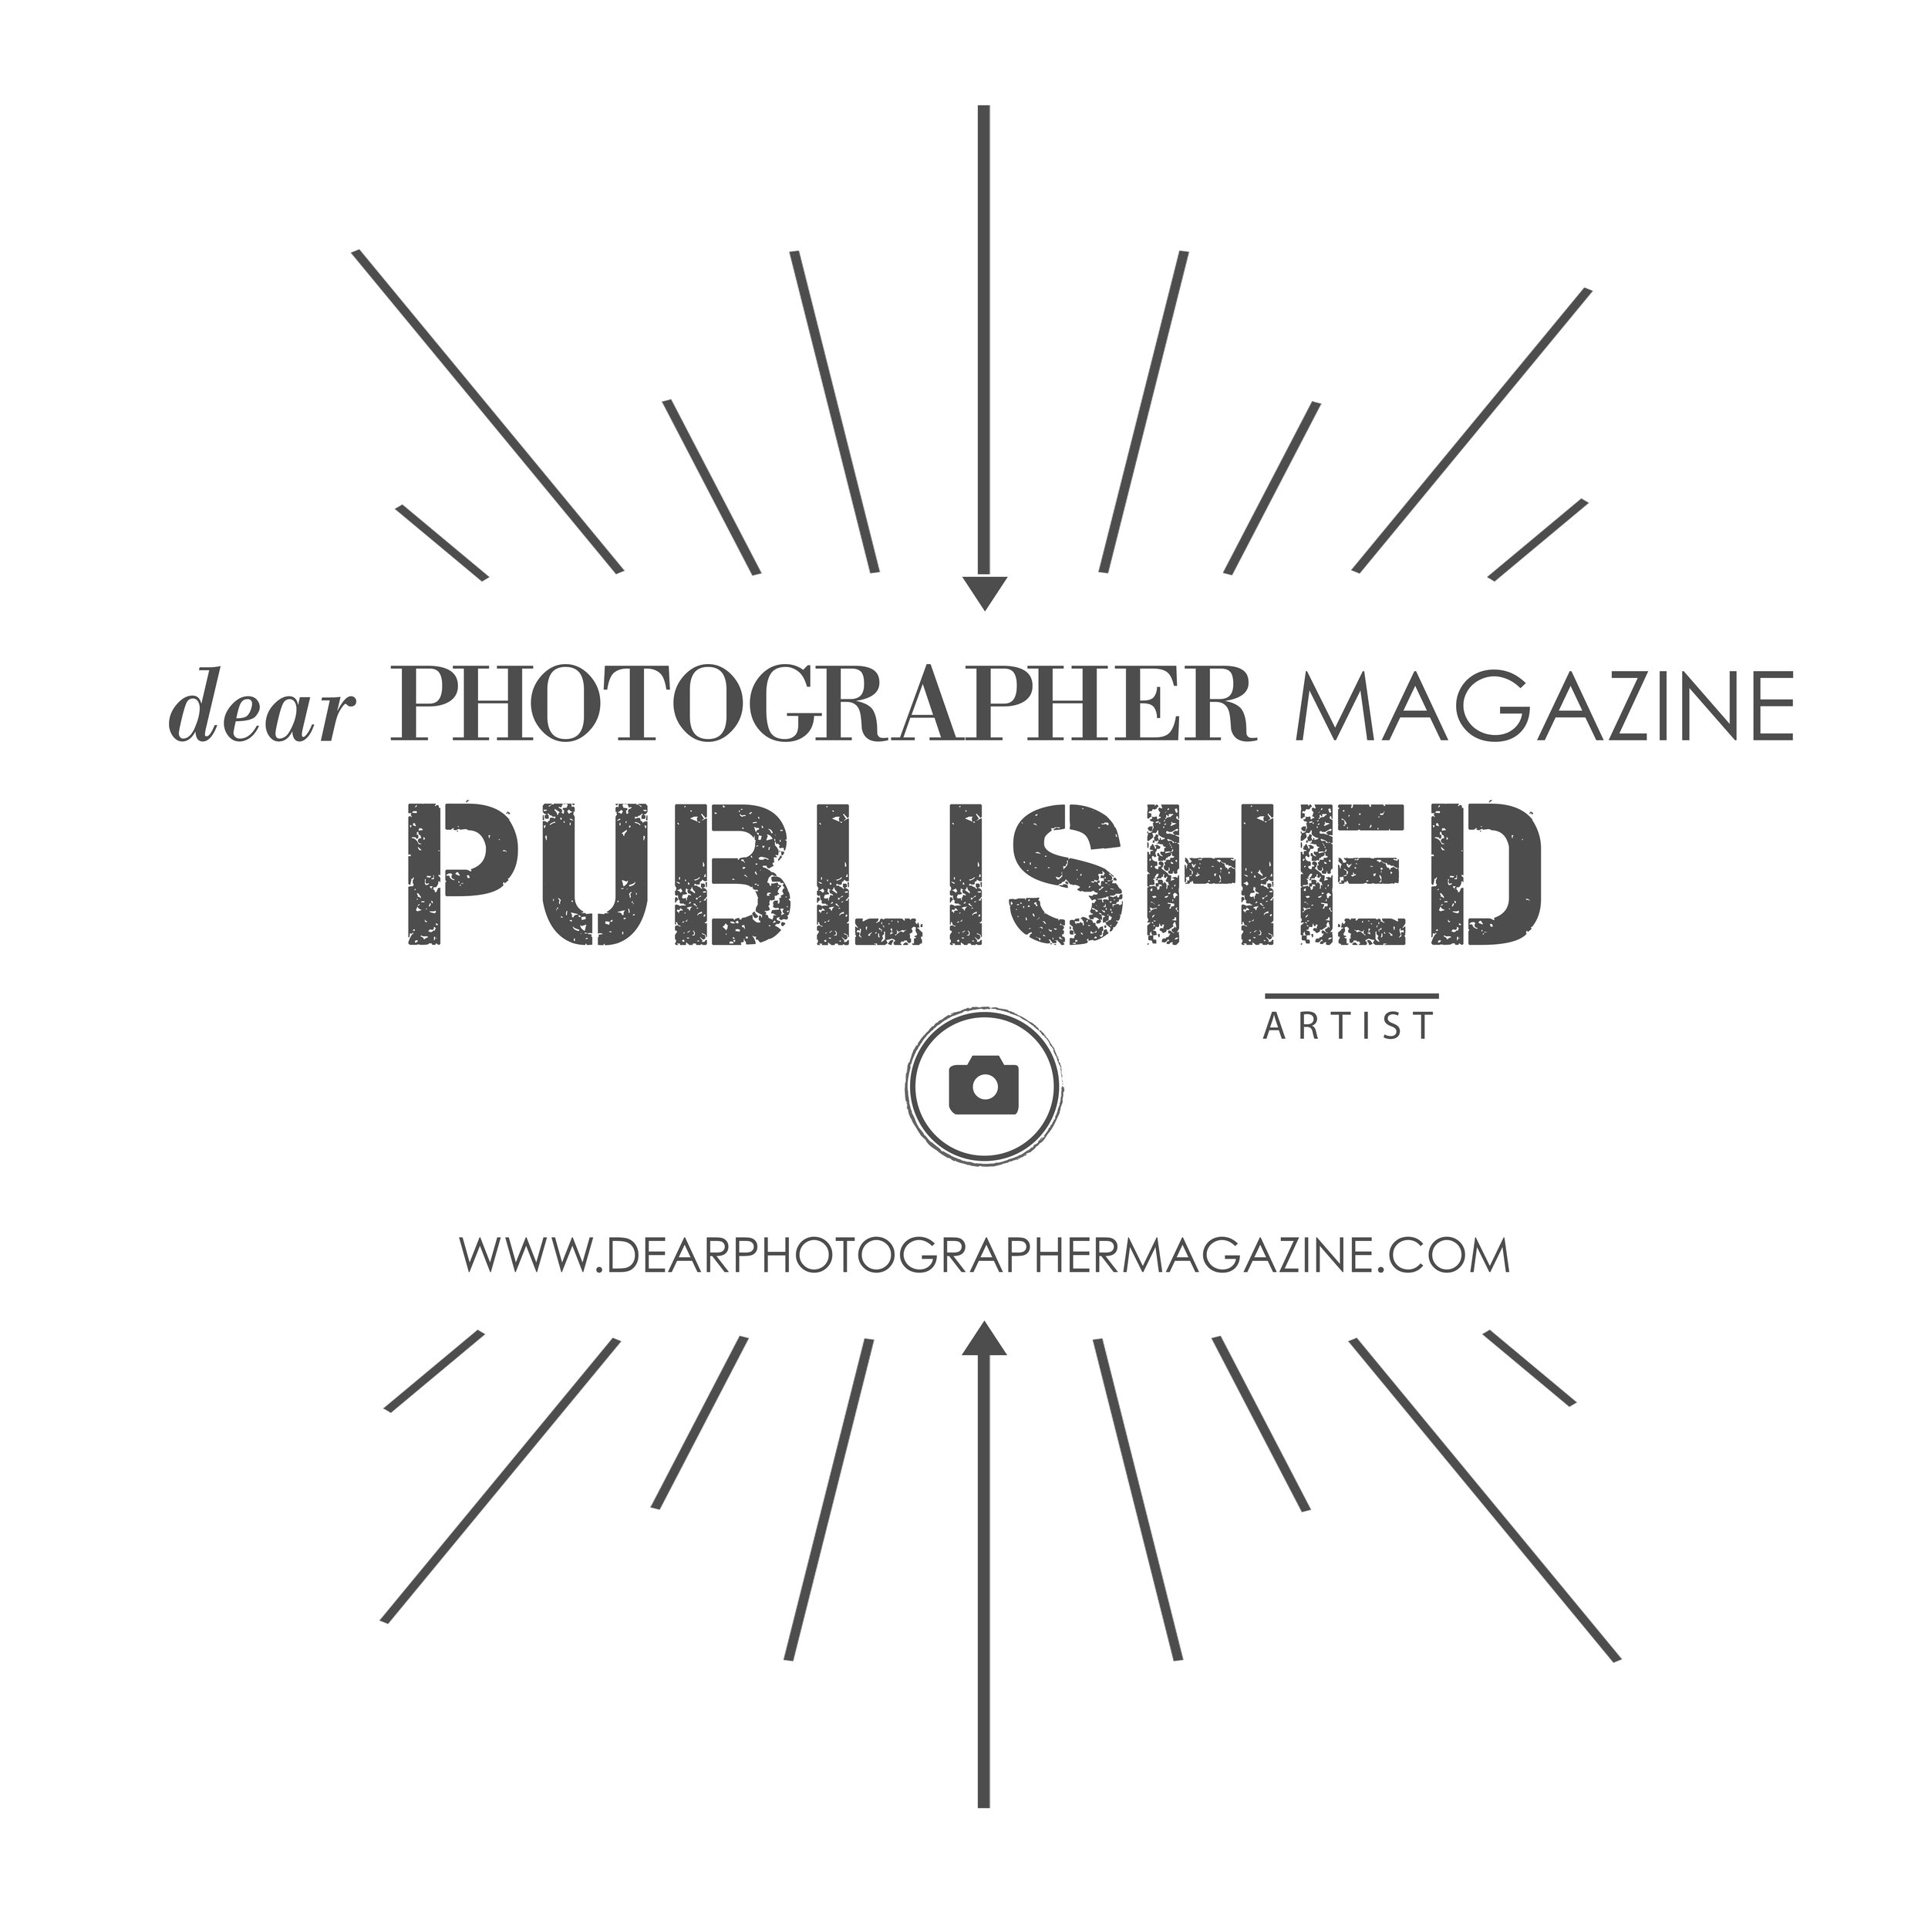 Published in 'dear PHOTOGRAPHER' Magazine